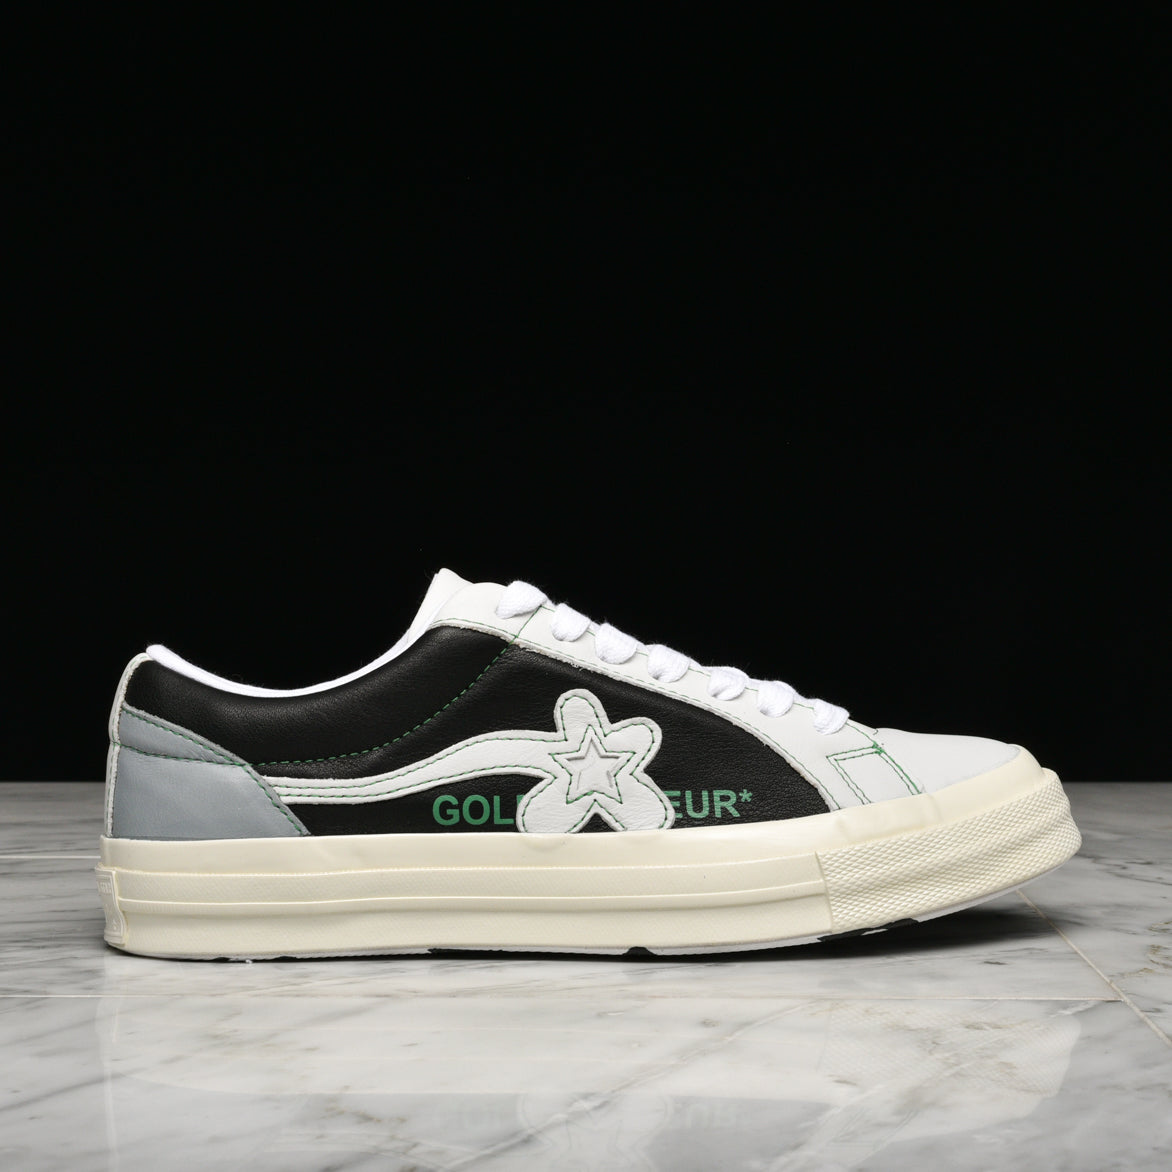 Golf Le Fleur X Converse One Star Ox Two Tone Barely Blue